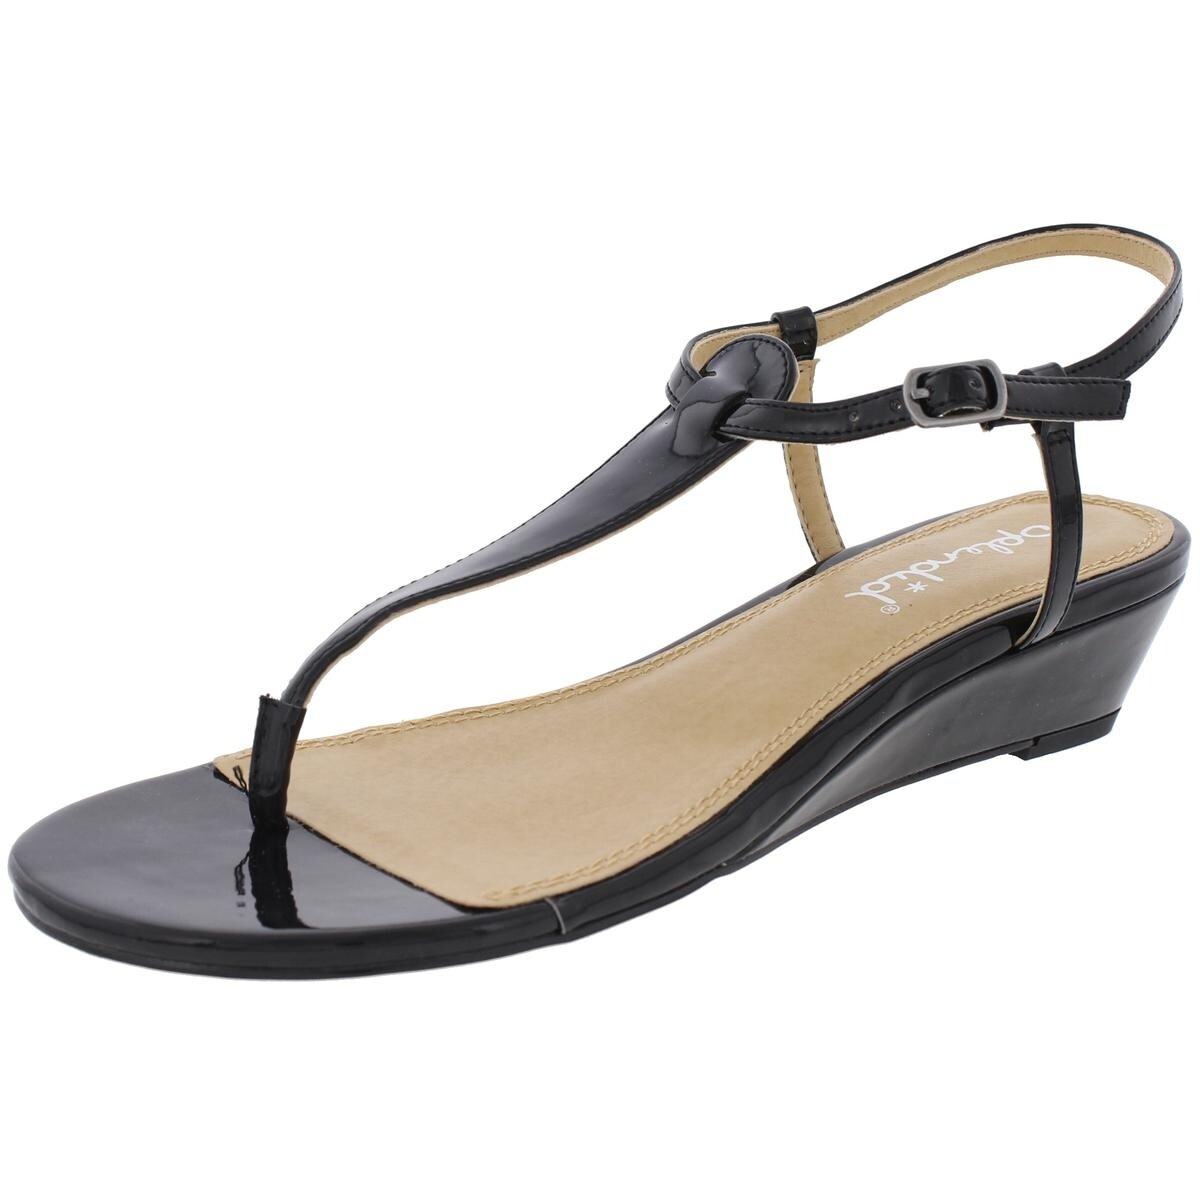 b17f549012d88 Shop Splendid Womens Justin Dress Sandals Solid Mini Wedge - Free Shipping  On Orders Over  45 - Overstock - 21364247